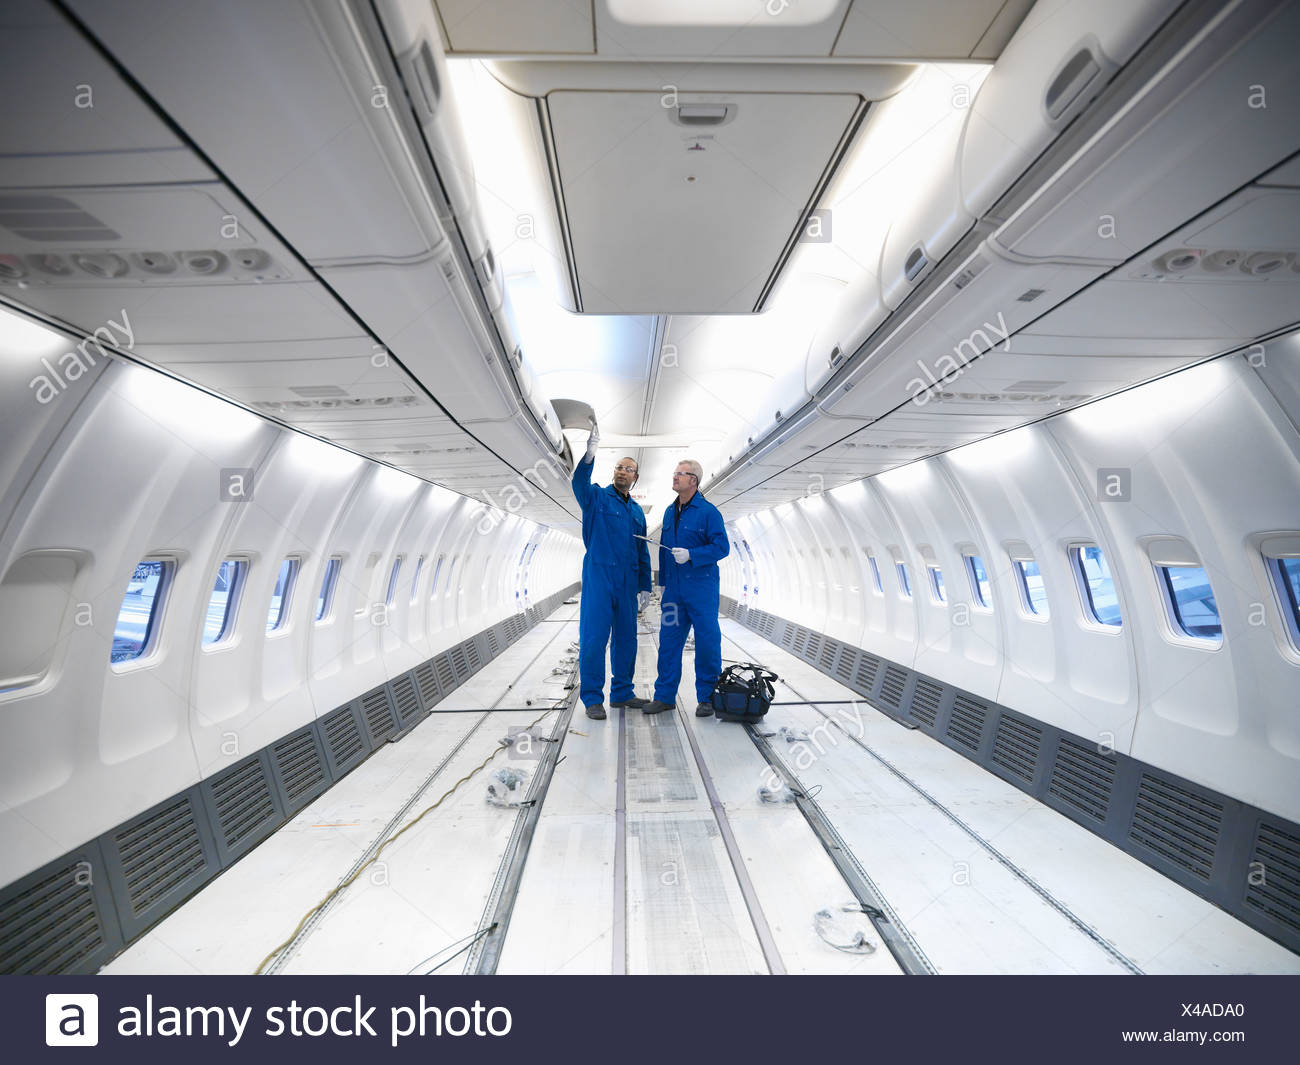 Worker examining empty airplane - Stock Image